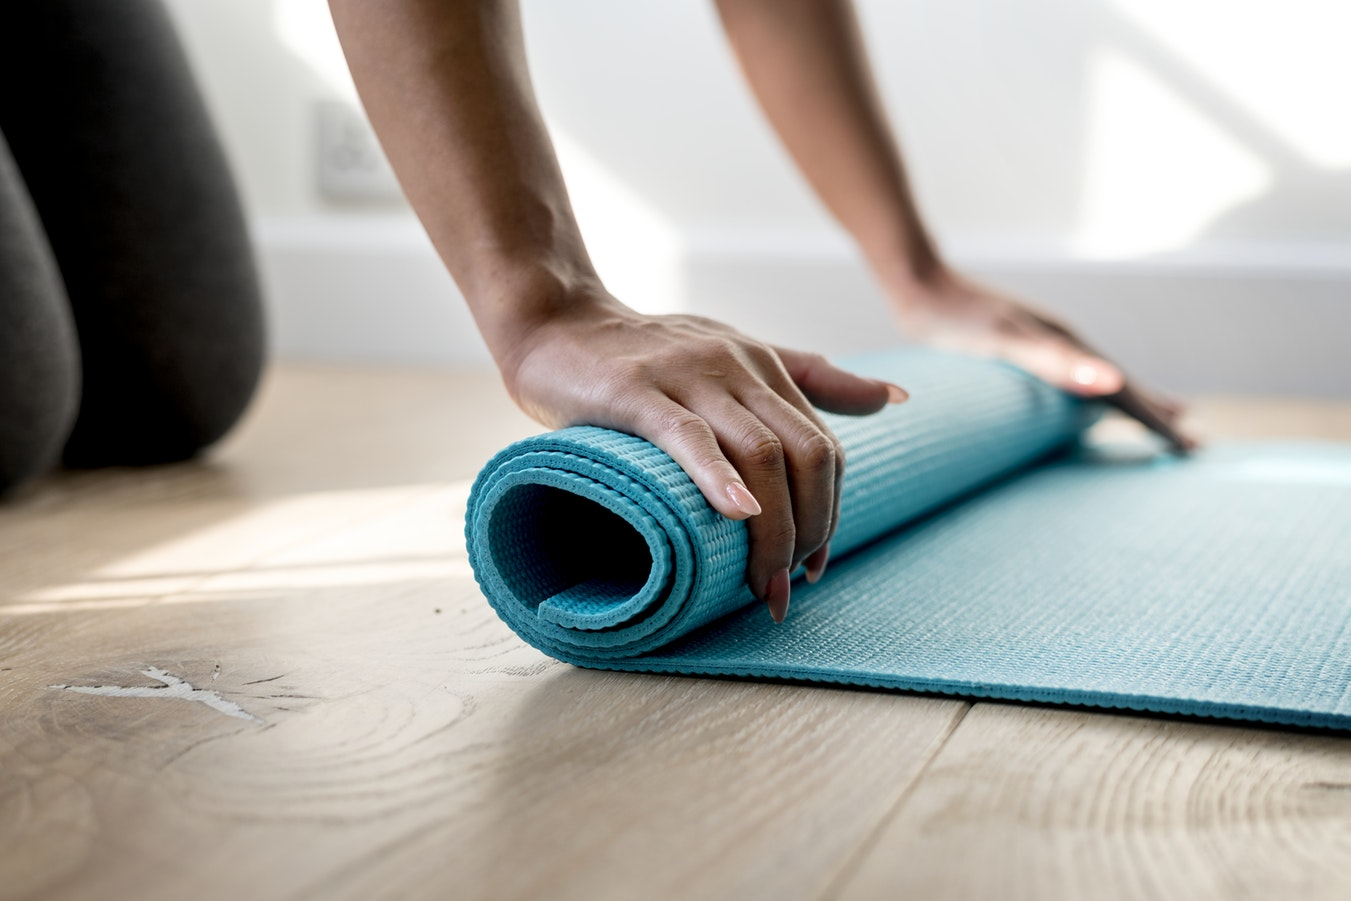 A woman rolling up a yoga. Yoga can help improve well-being for seniors.